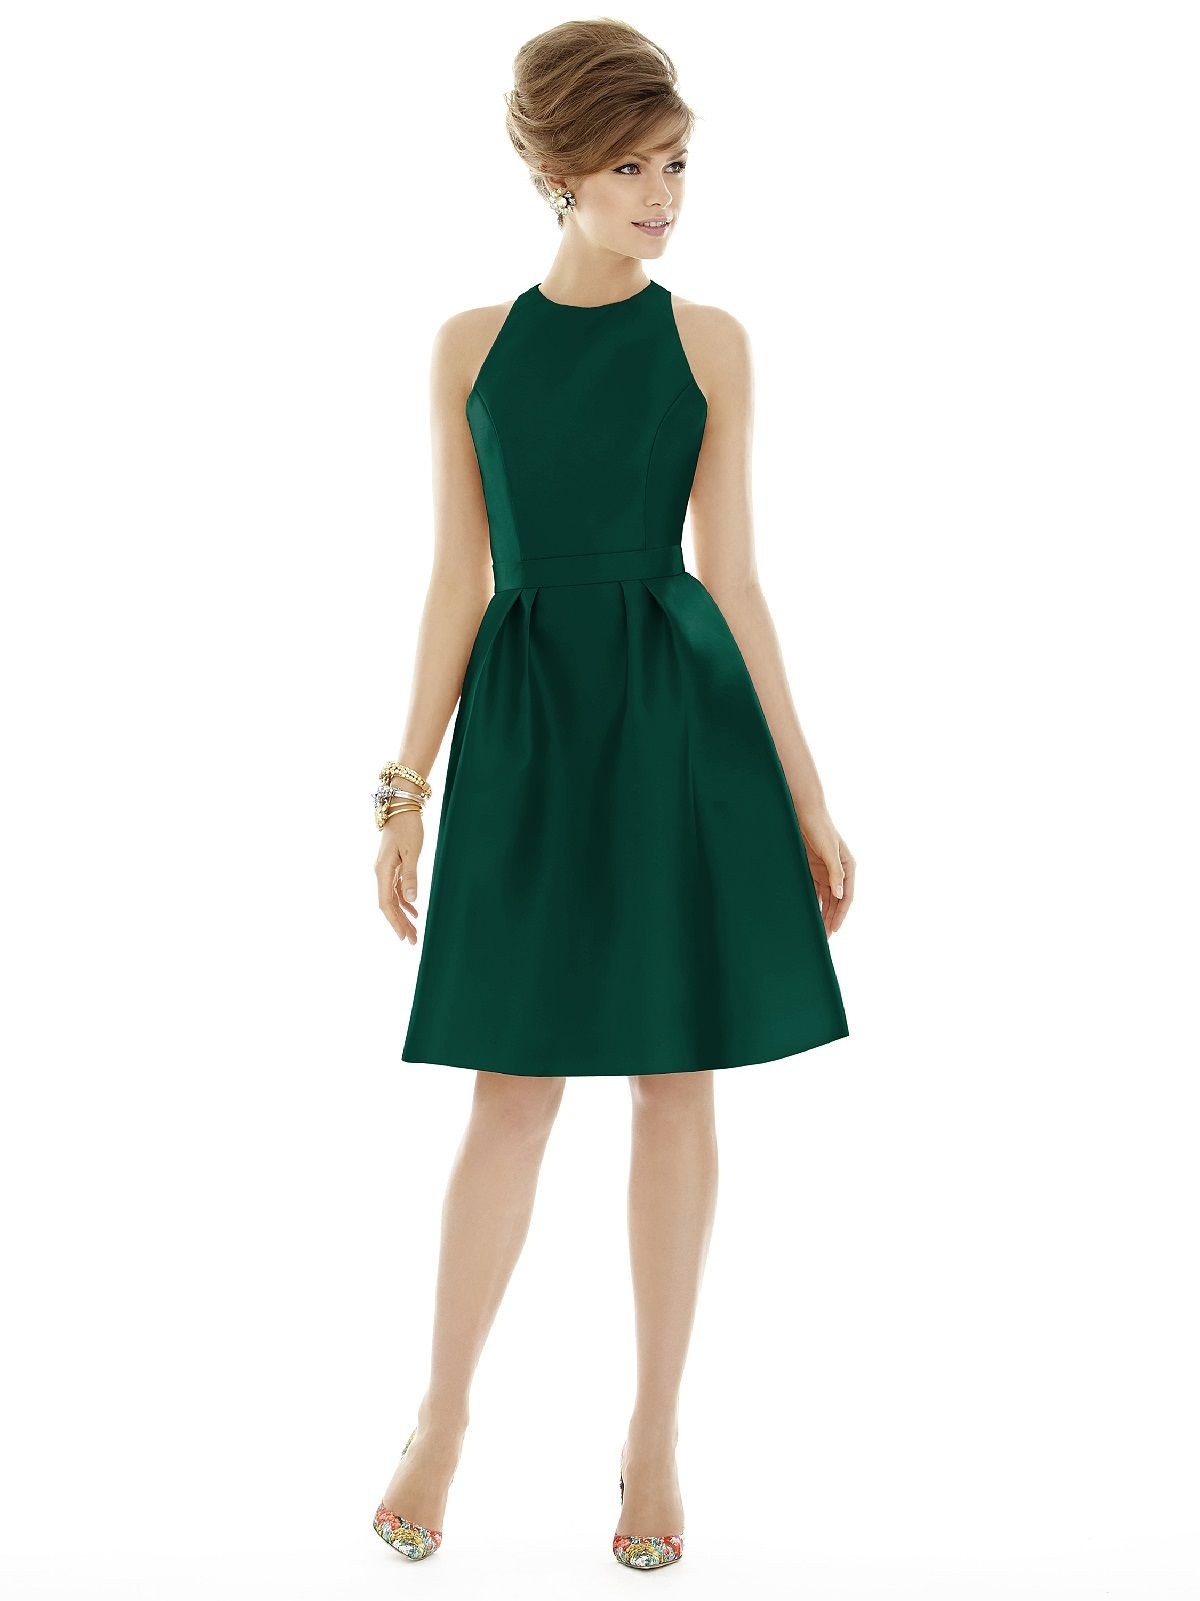 Shop alfred sung bridesmaid dress d696 in sateen twill at shop alfred sung bridesmaid dress d696 in sateen twill at weddington way find the ombrellifo Choice Image